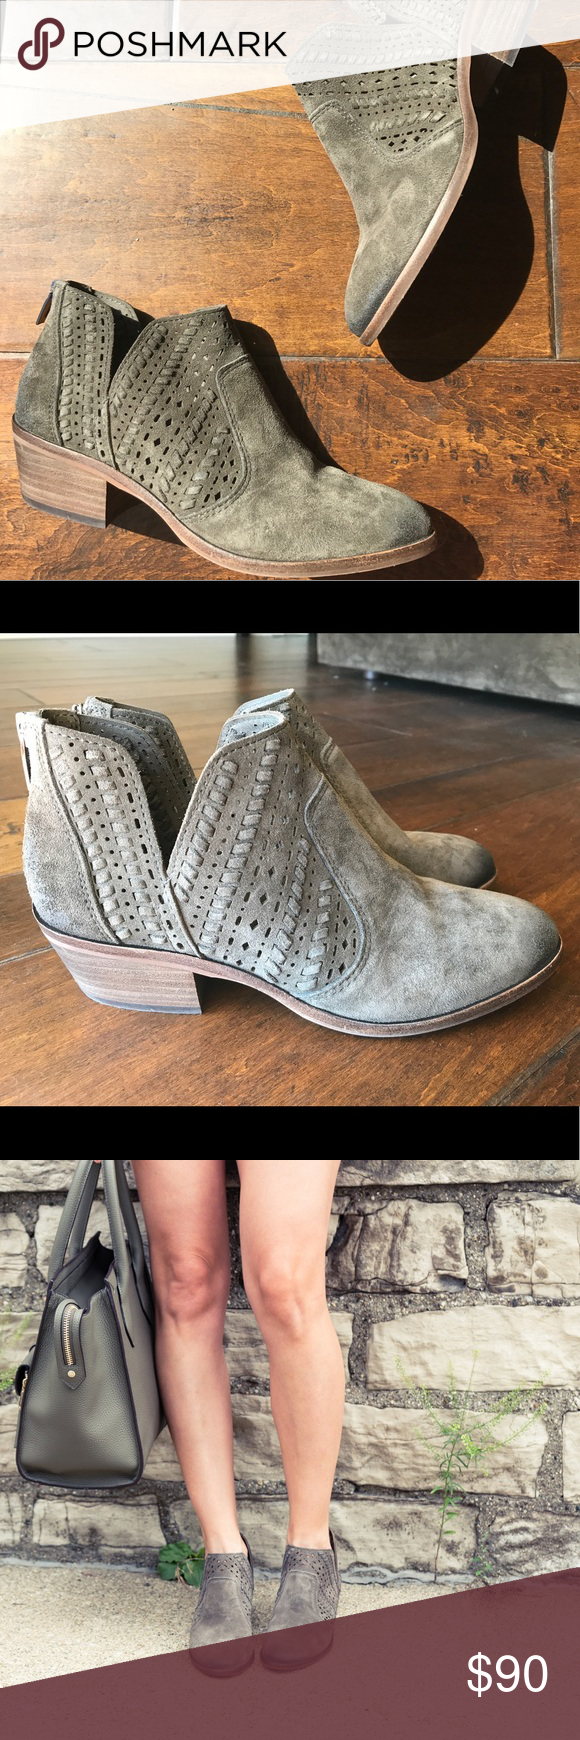 8a517e0f9a64 Vince Camuto Prasata Vince Camuto Prasata ankle booties. Great low heel  ankle booties in an